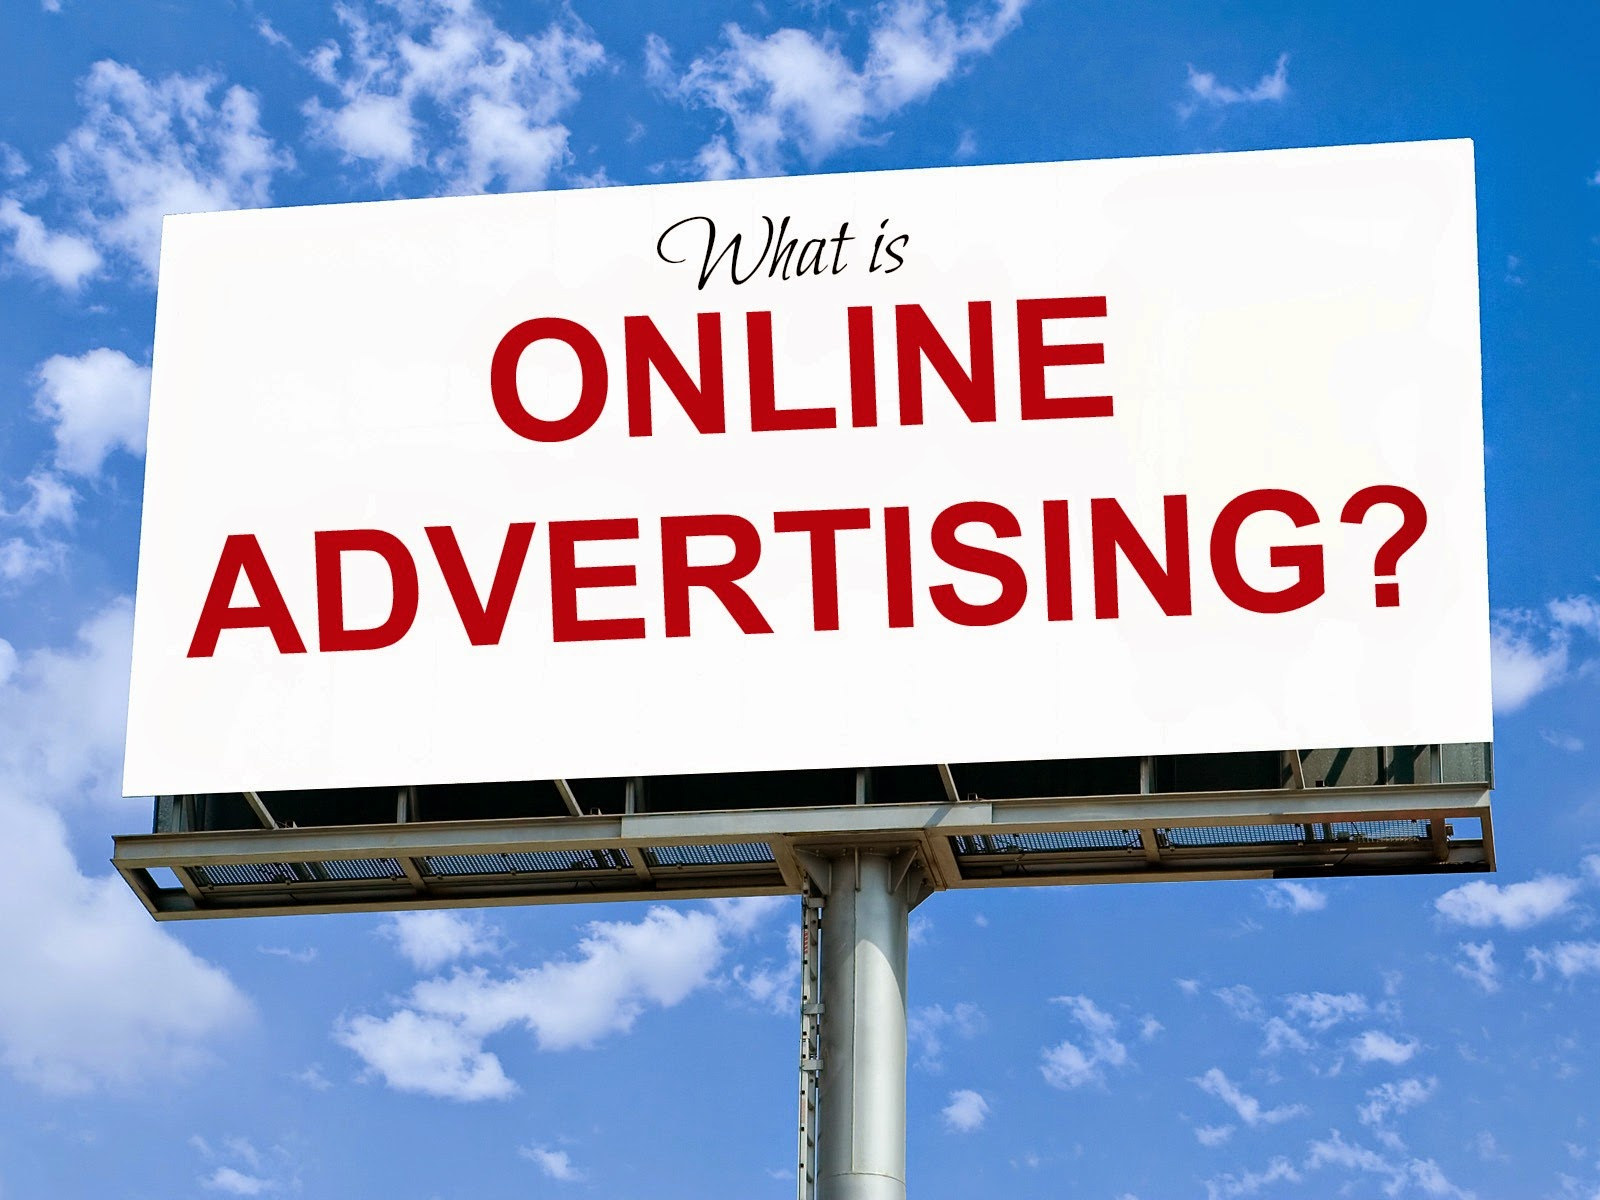 online advertising Online advertising, also called online marketing or internet advertising or web advertising, is a form of marketing and advertising which uses the internet to deliver promotional marketing messages to consumers.